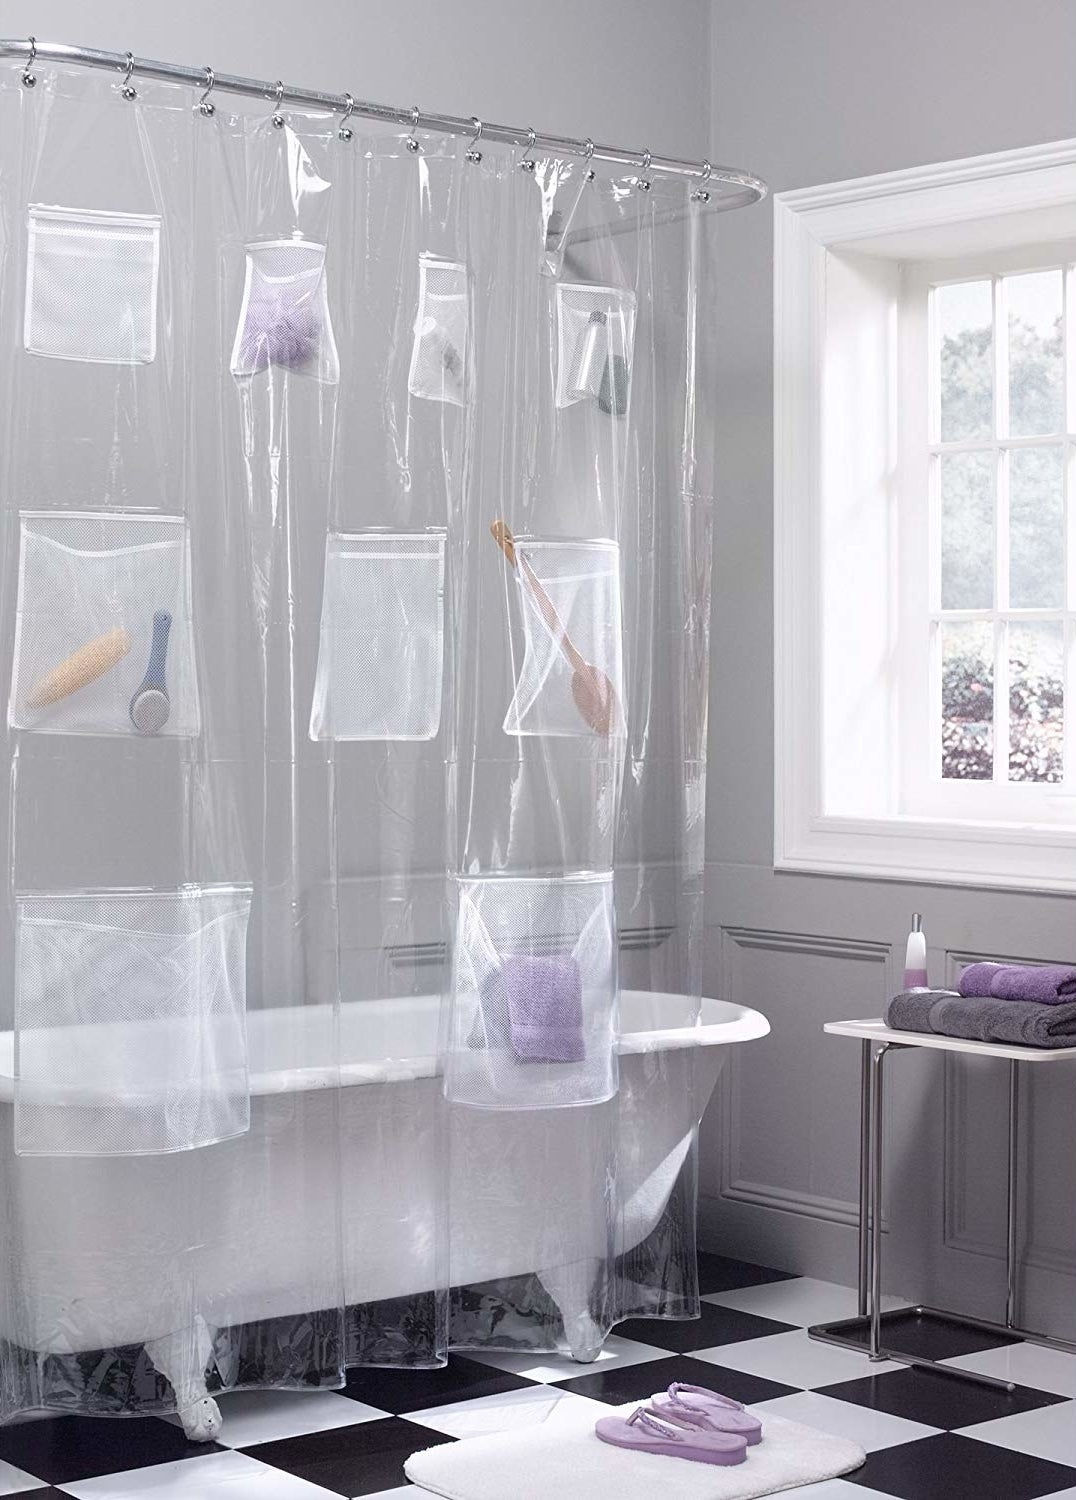 the clear shower curtain with pockets holding a washcloth, back scrubber, shower wash and other items